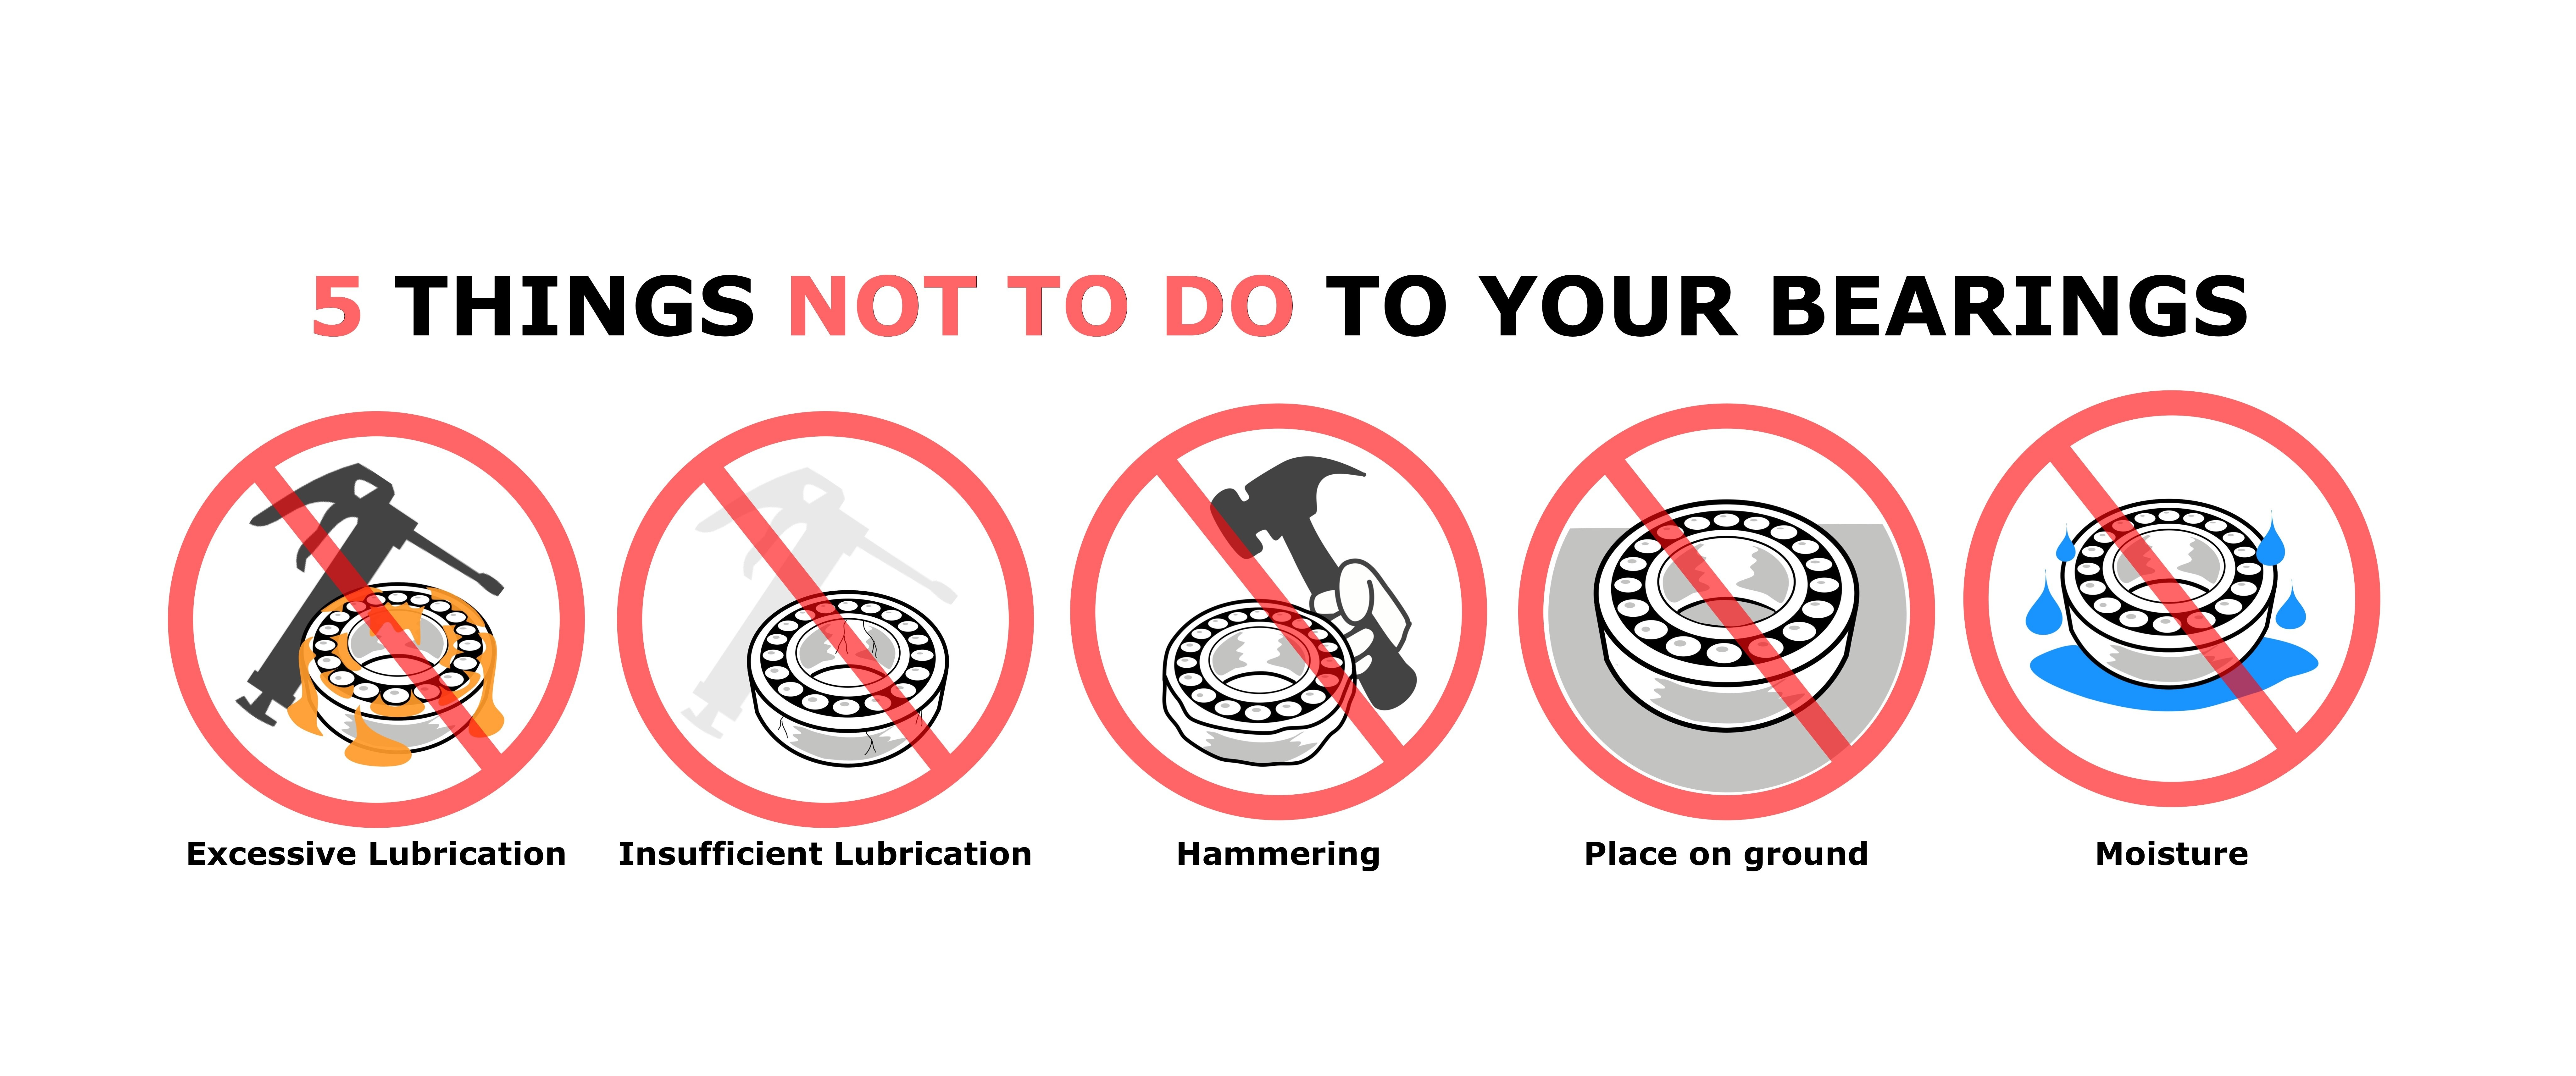 These Are The 5 Things You Should Not Do To Your Bearings